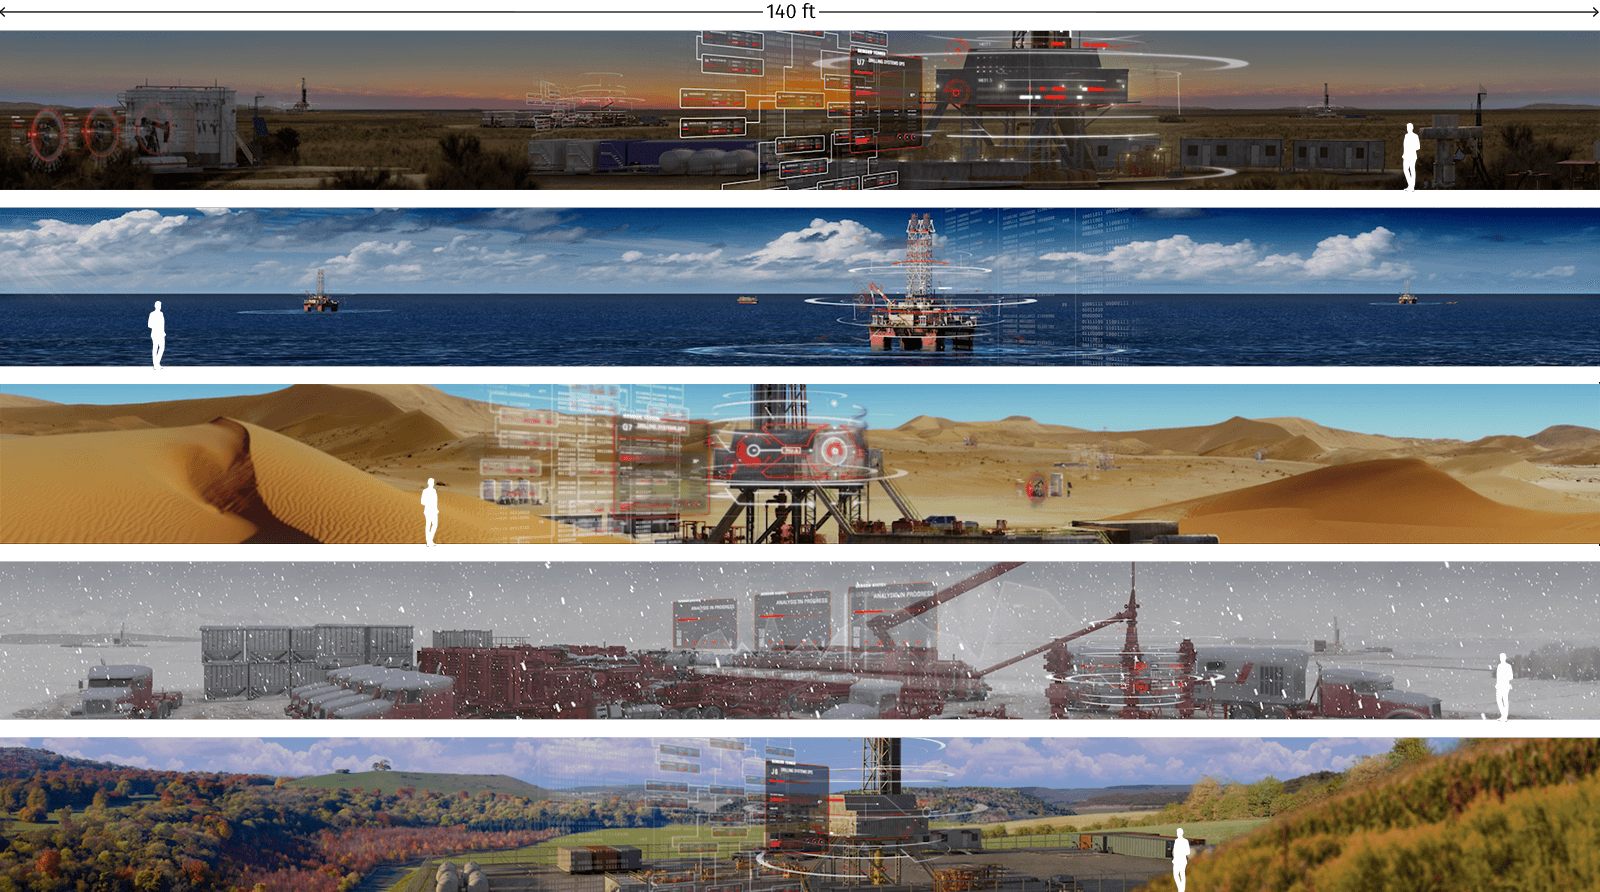 Scale of screens created for immersive experience for Halliburton's LIFE event